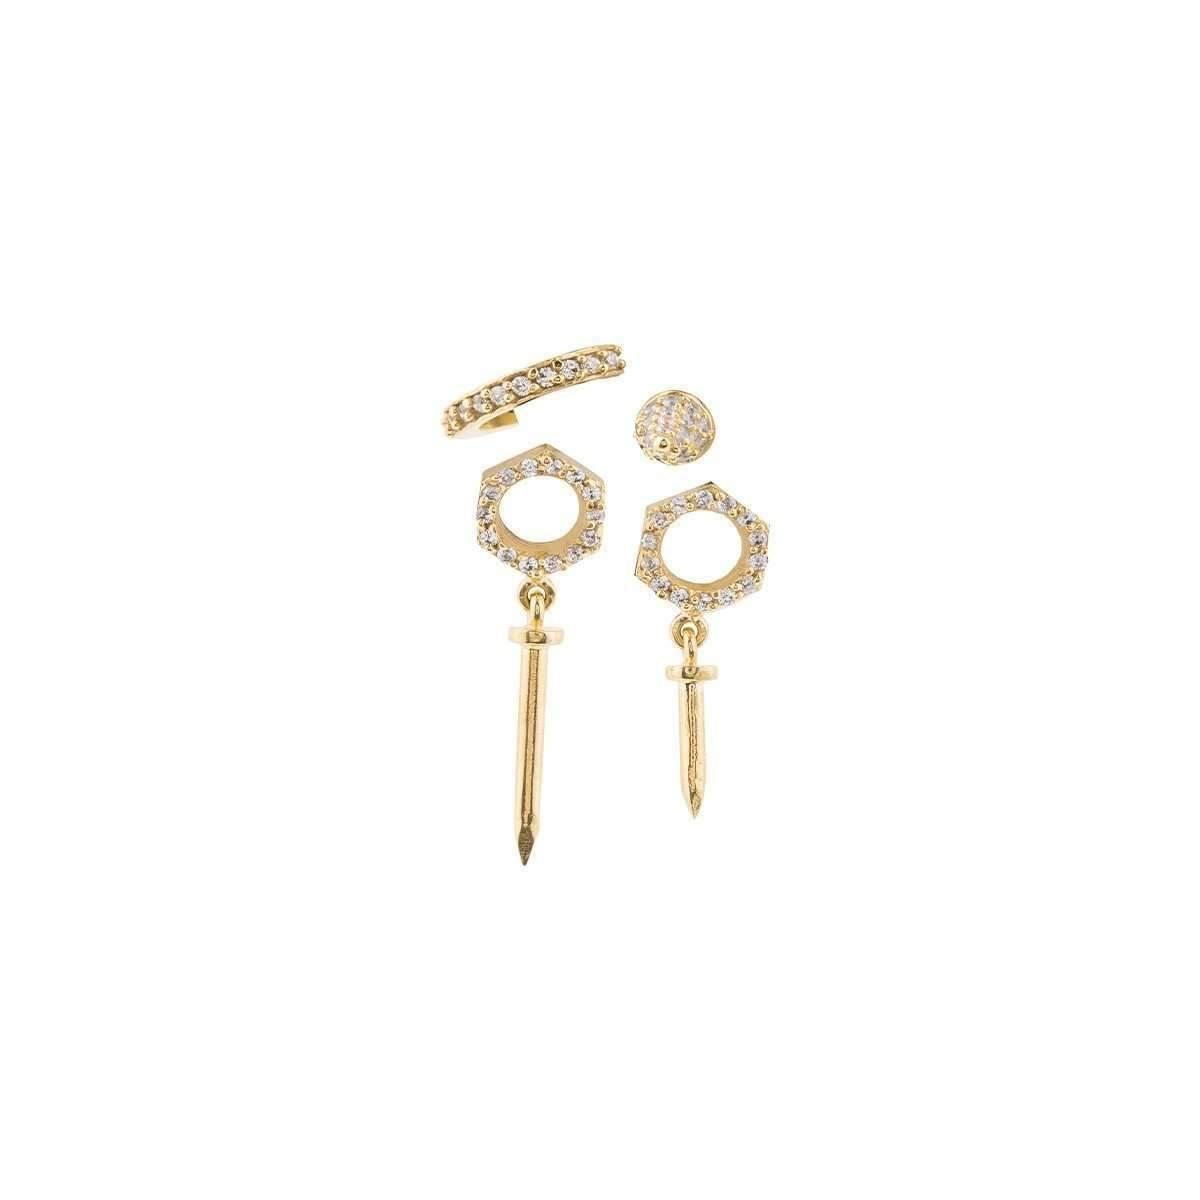 Joanna Laura Constantine Nuts Nails Stud Earrings 7dZmx